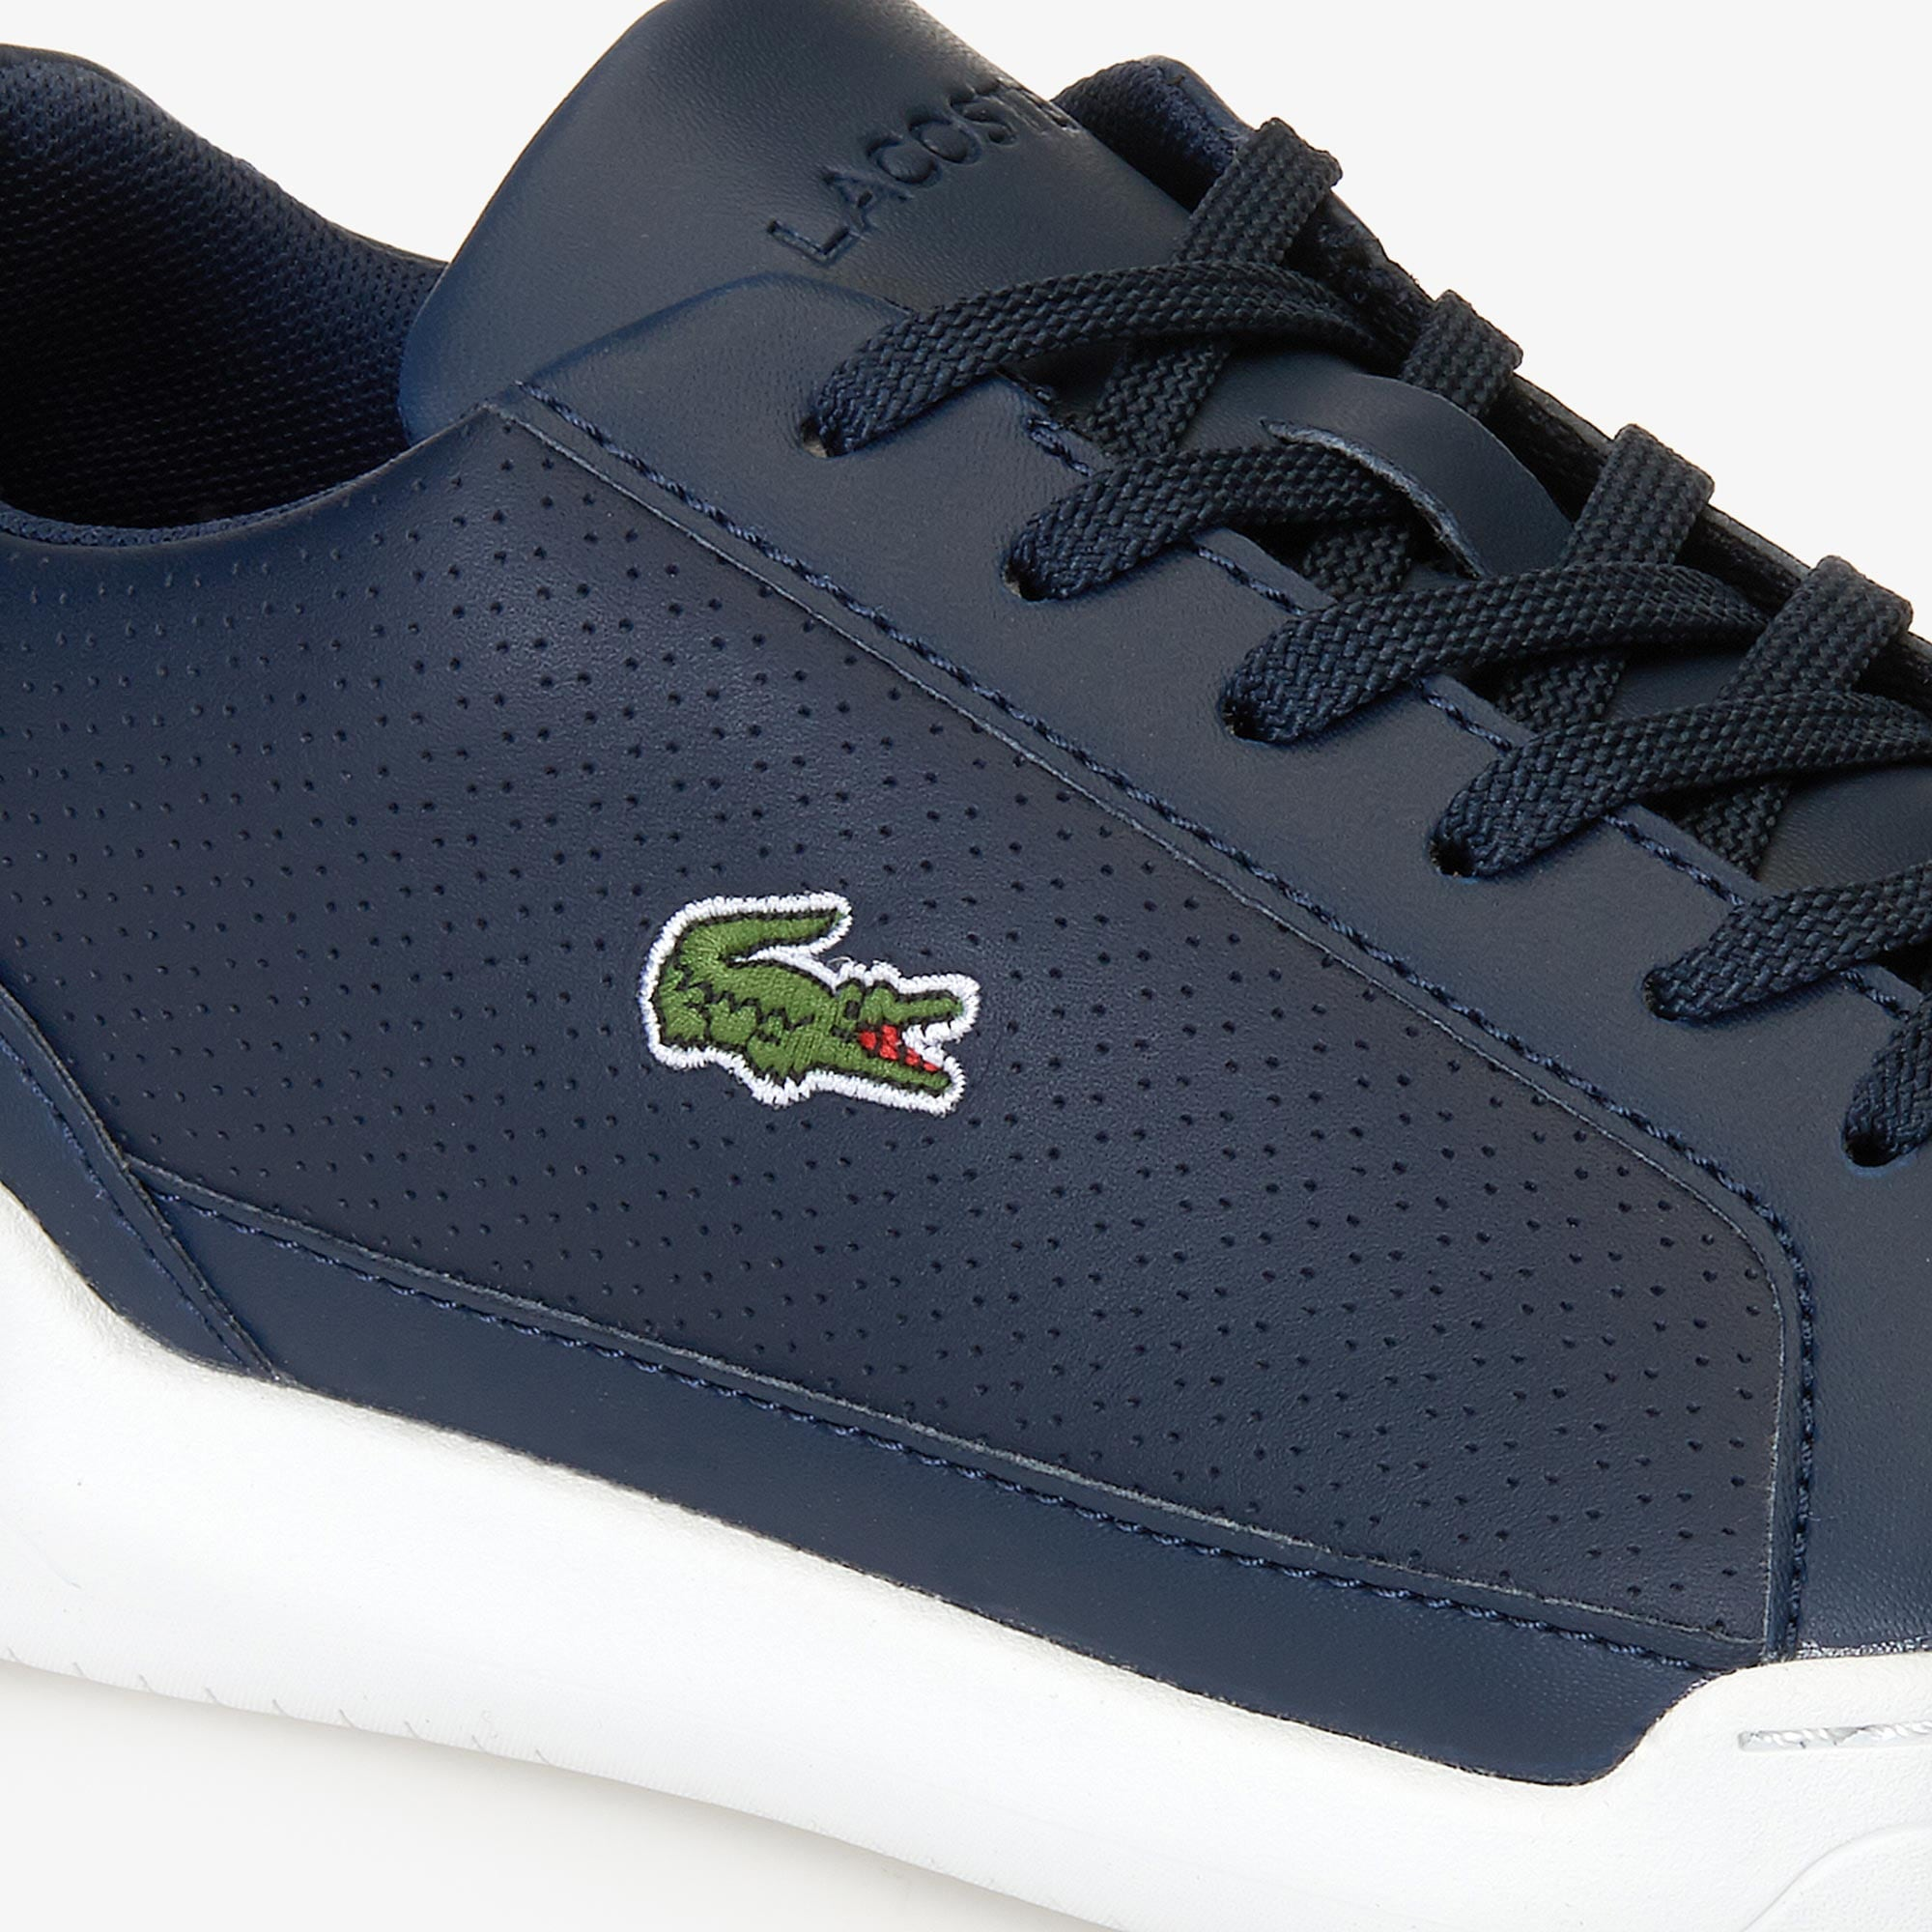 Women's Challenge Leather and Synthethic Sneakers